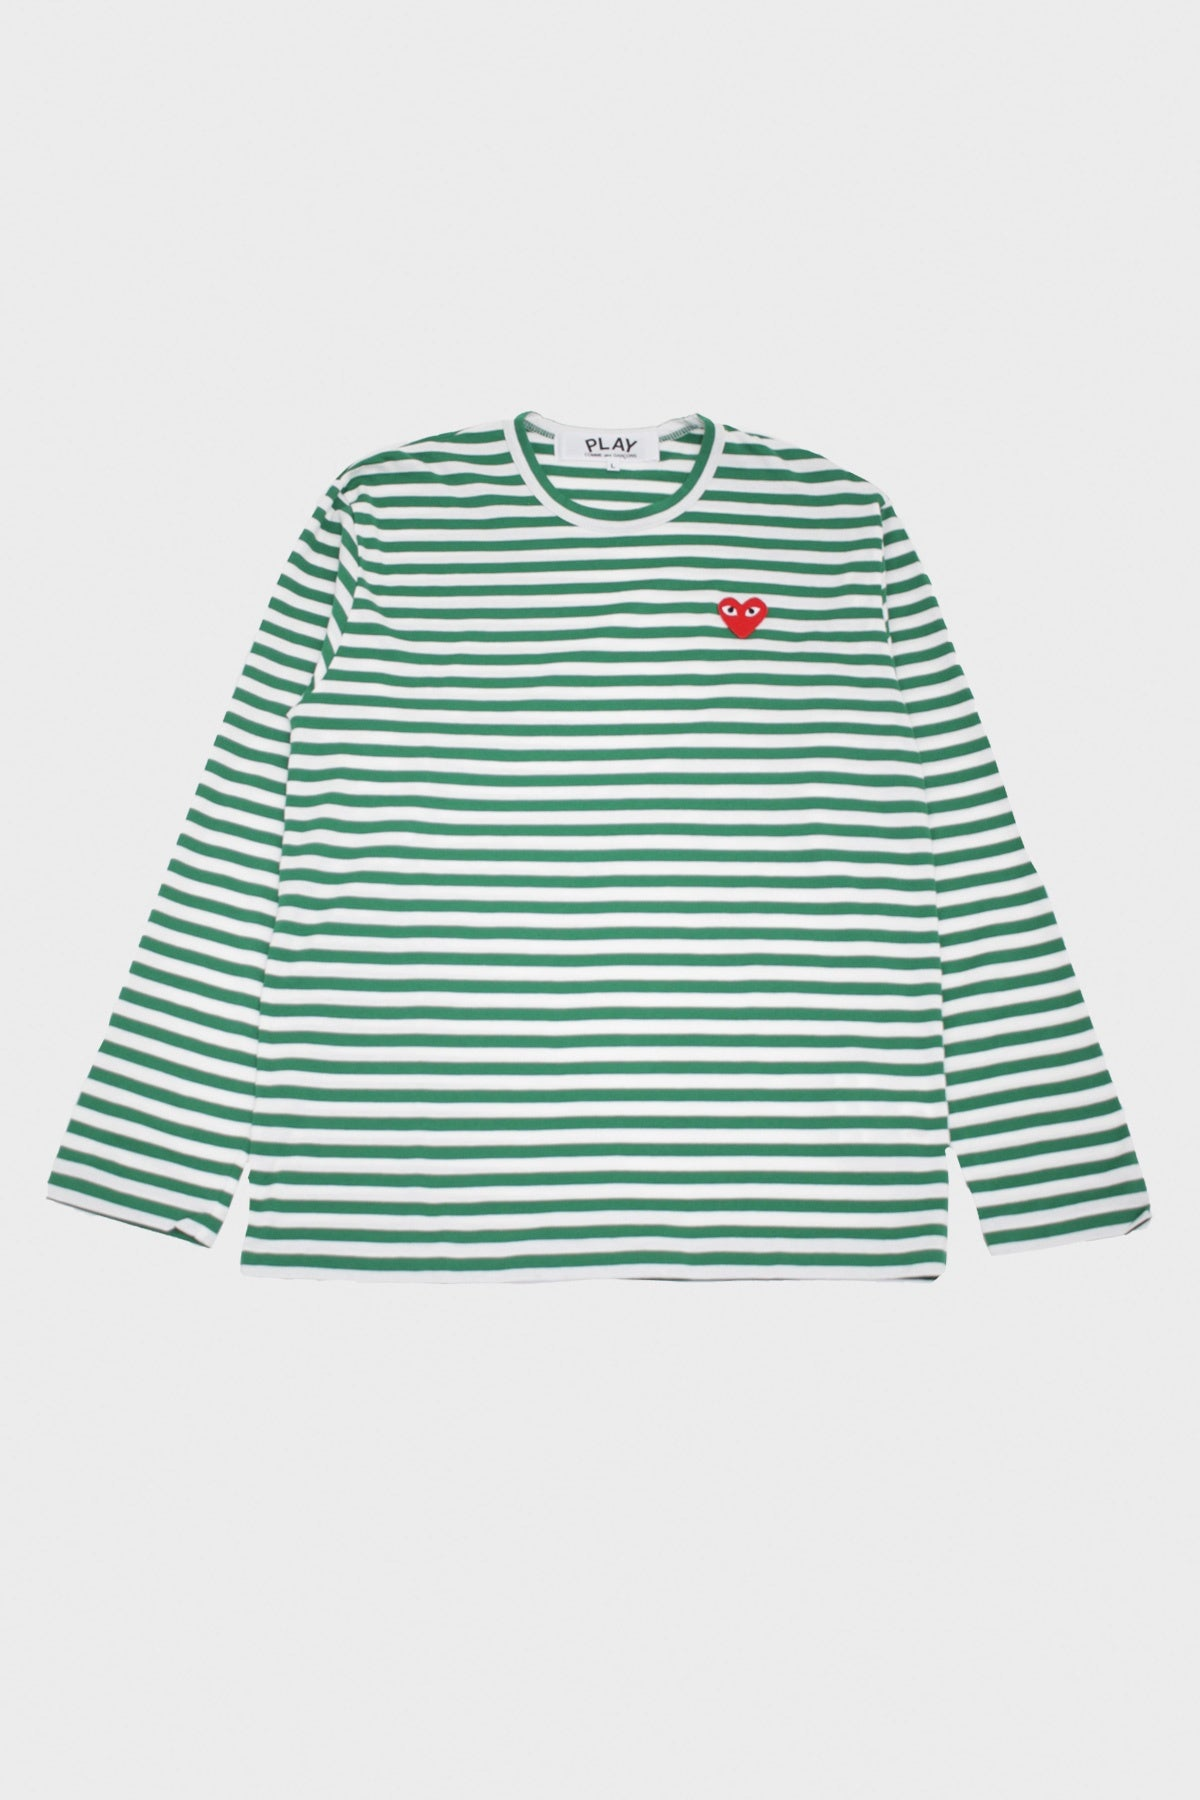 Comme des Garçons PLAY - Red Heart Striped T-Shirt - Green/White - Canoe Club